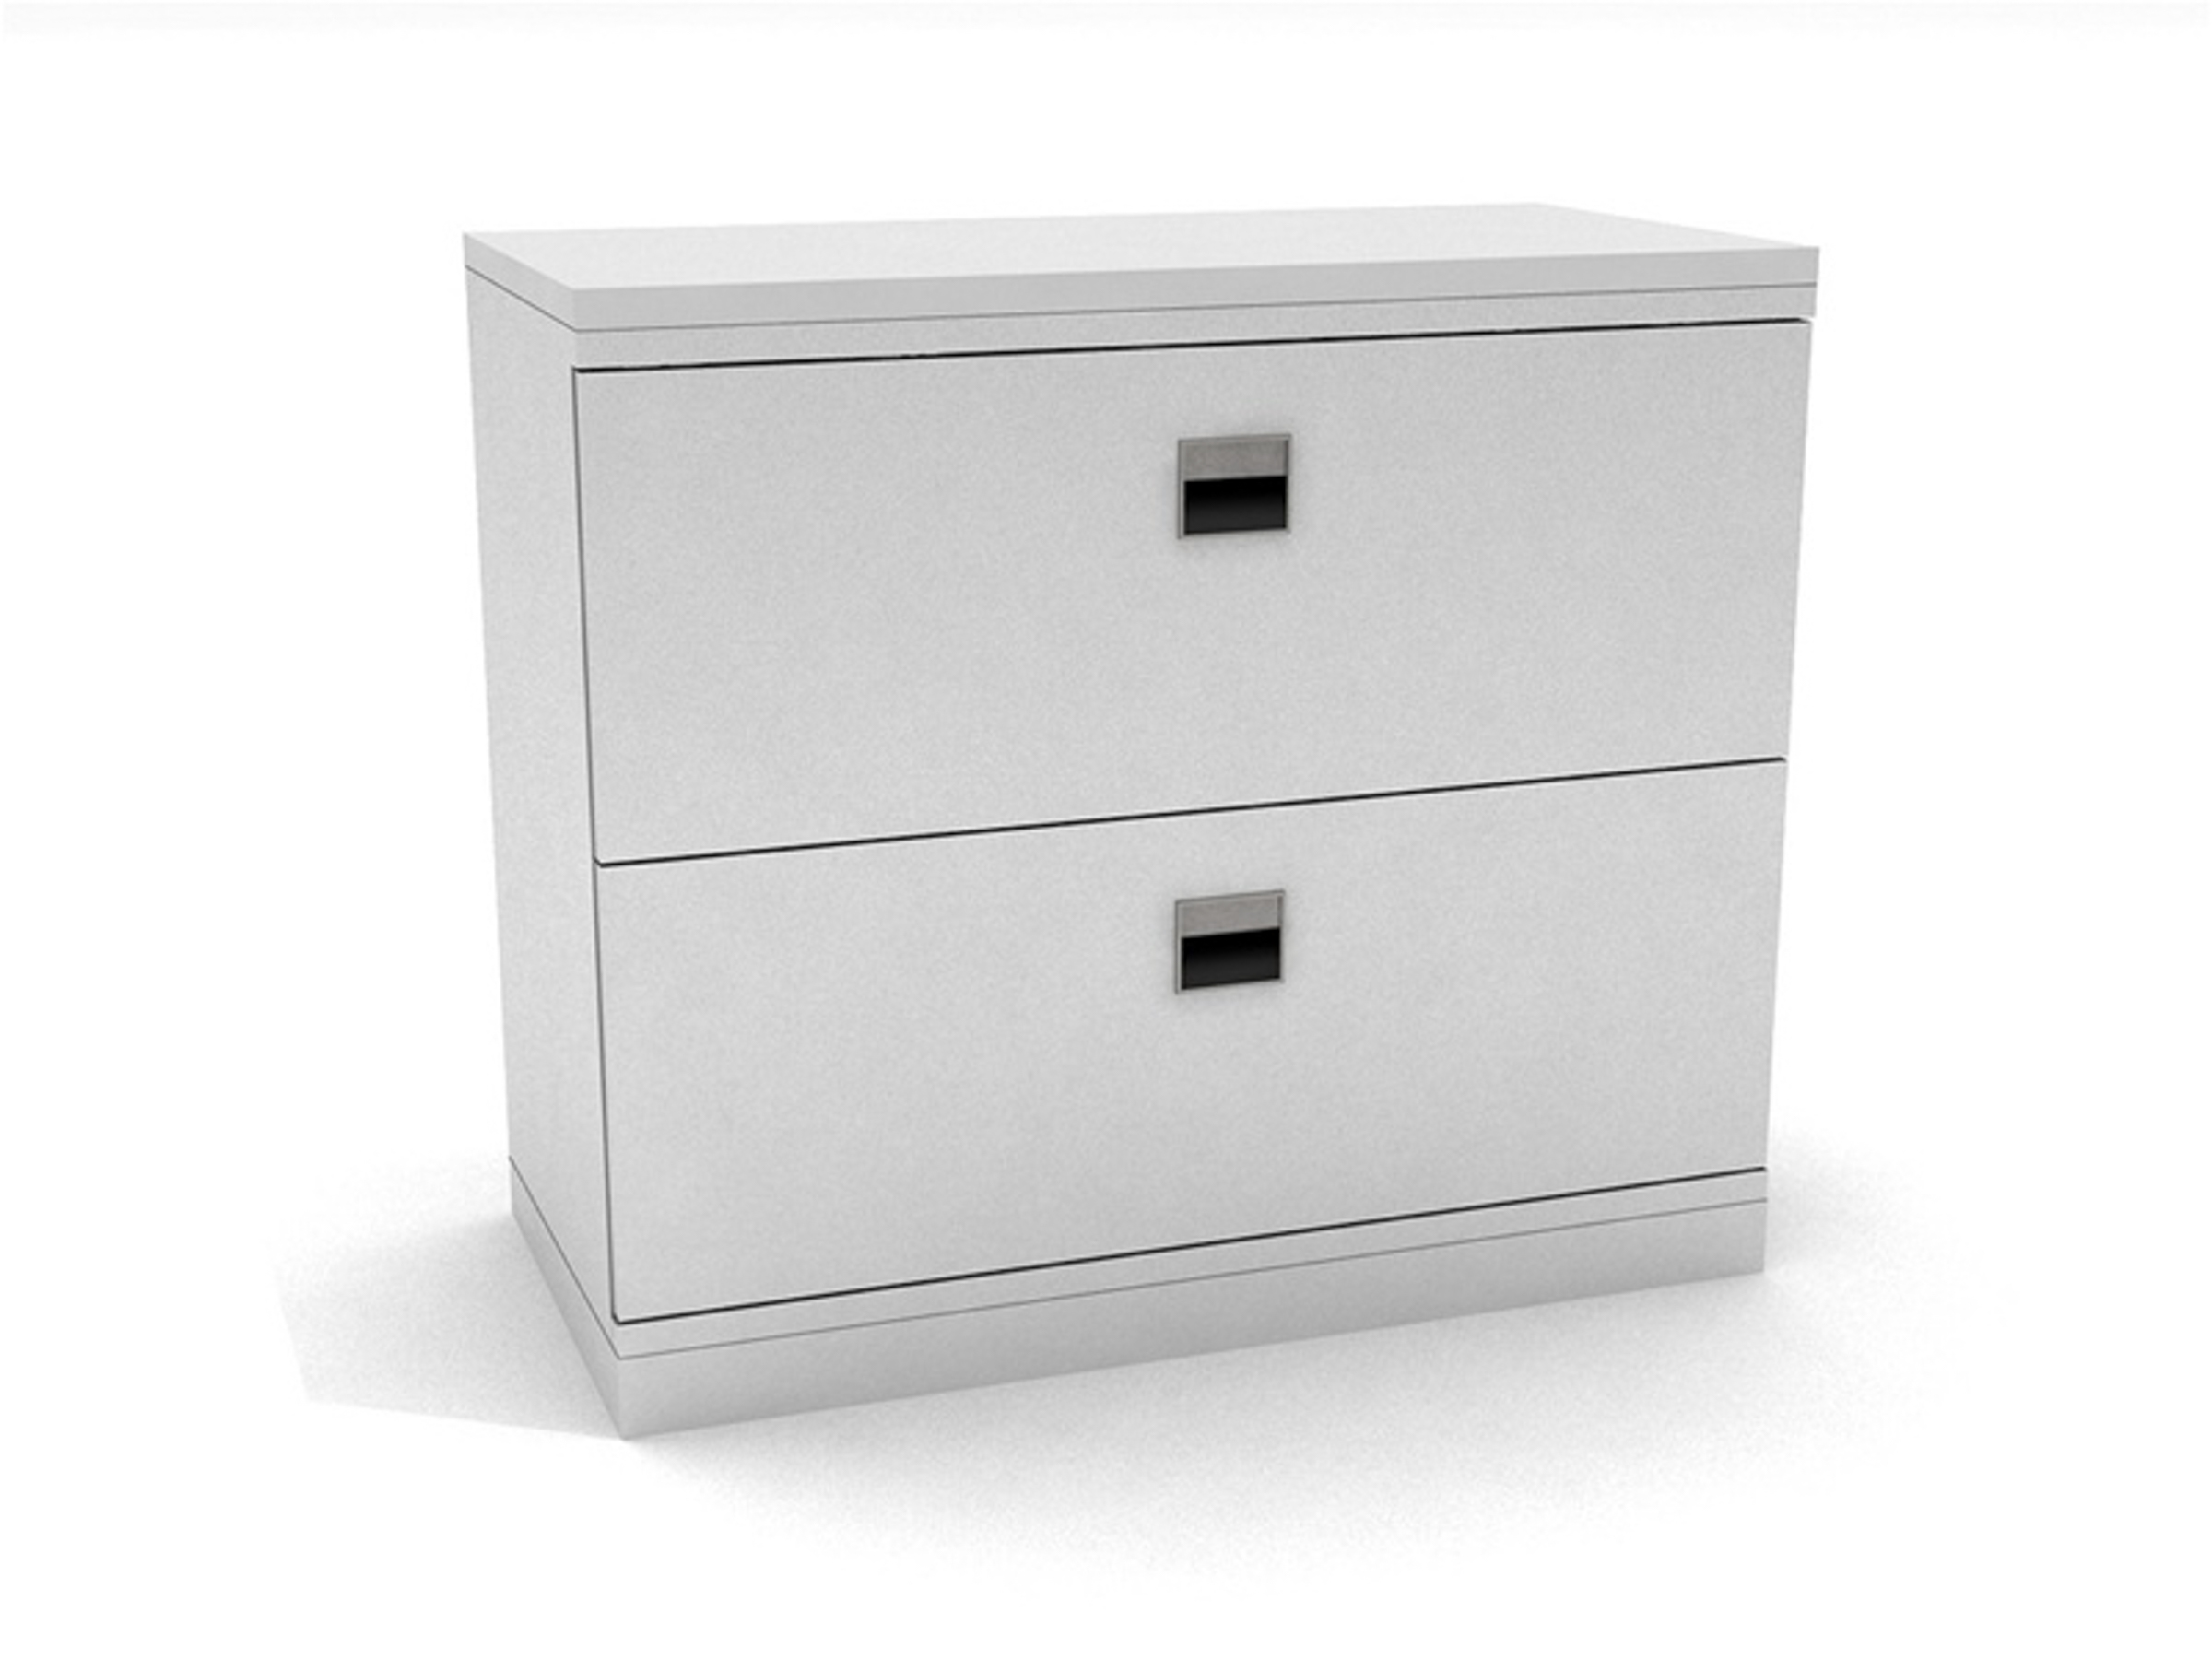 Datum C2 Office Storage Lateral File Cabinet Steelcase